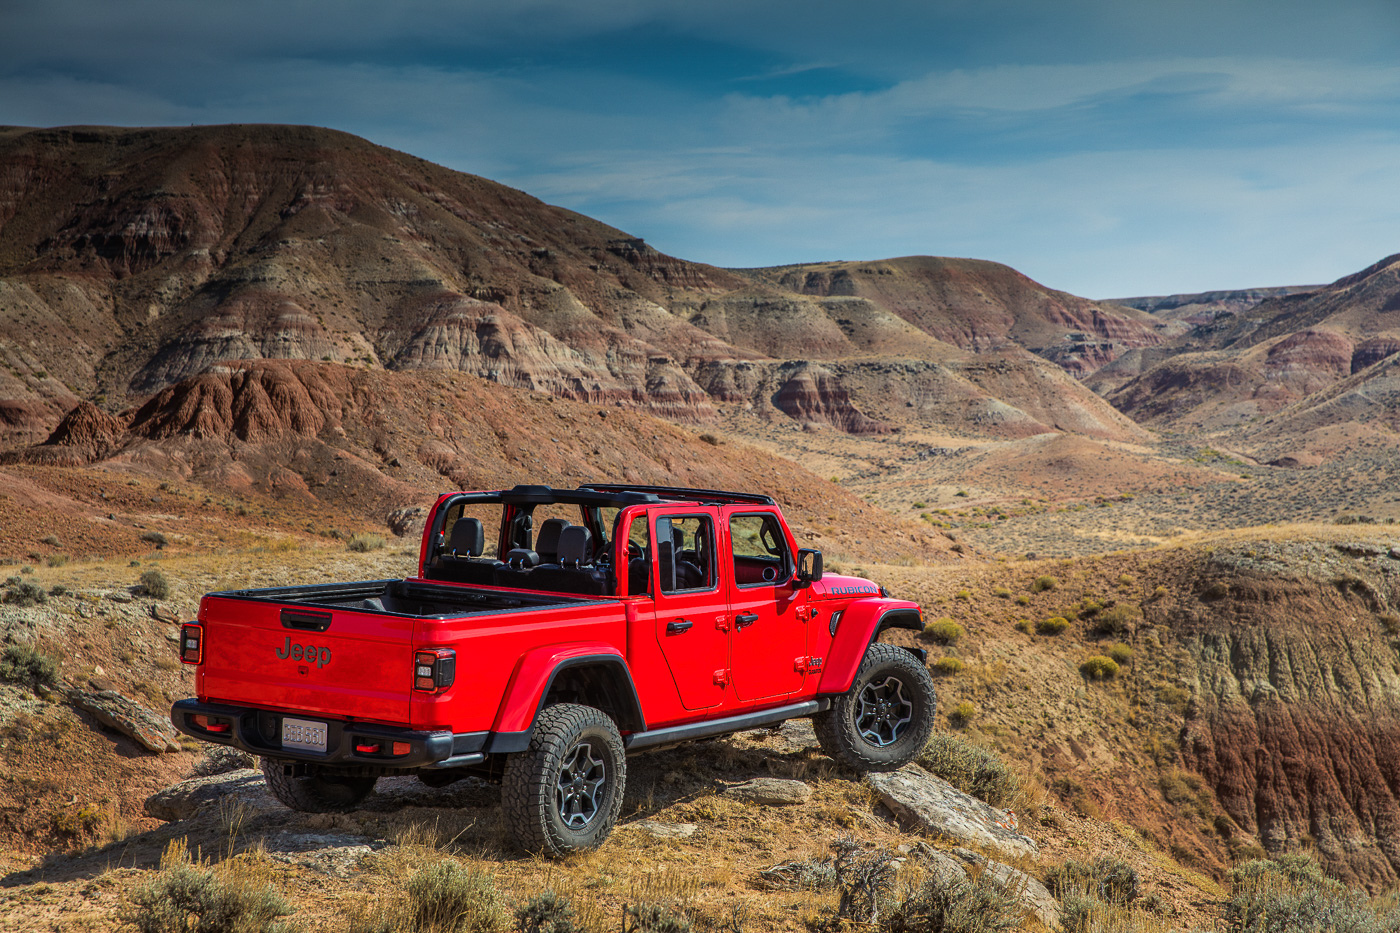 Jeep-Gladiator-Rubicon-124.jpg